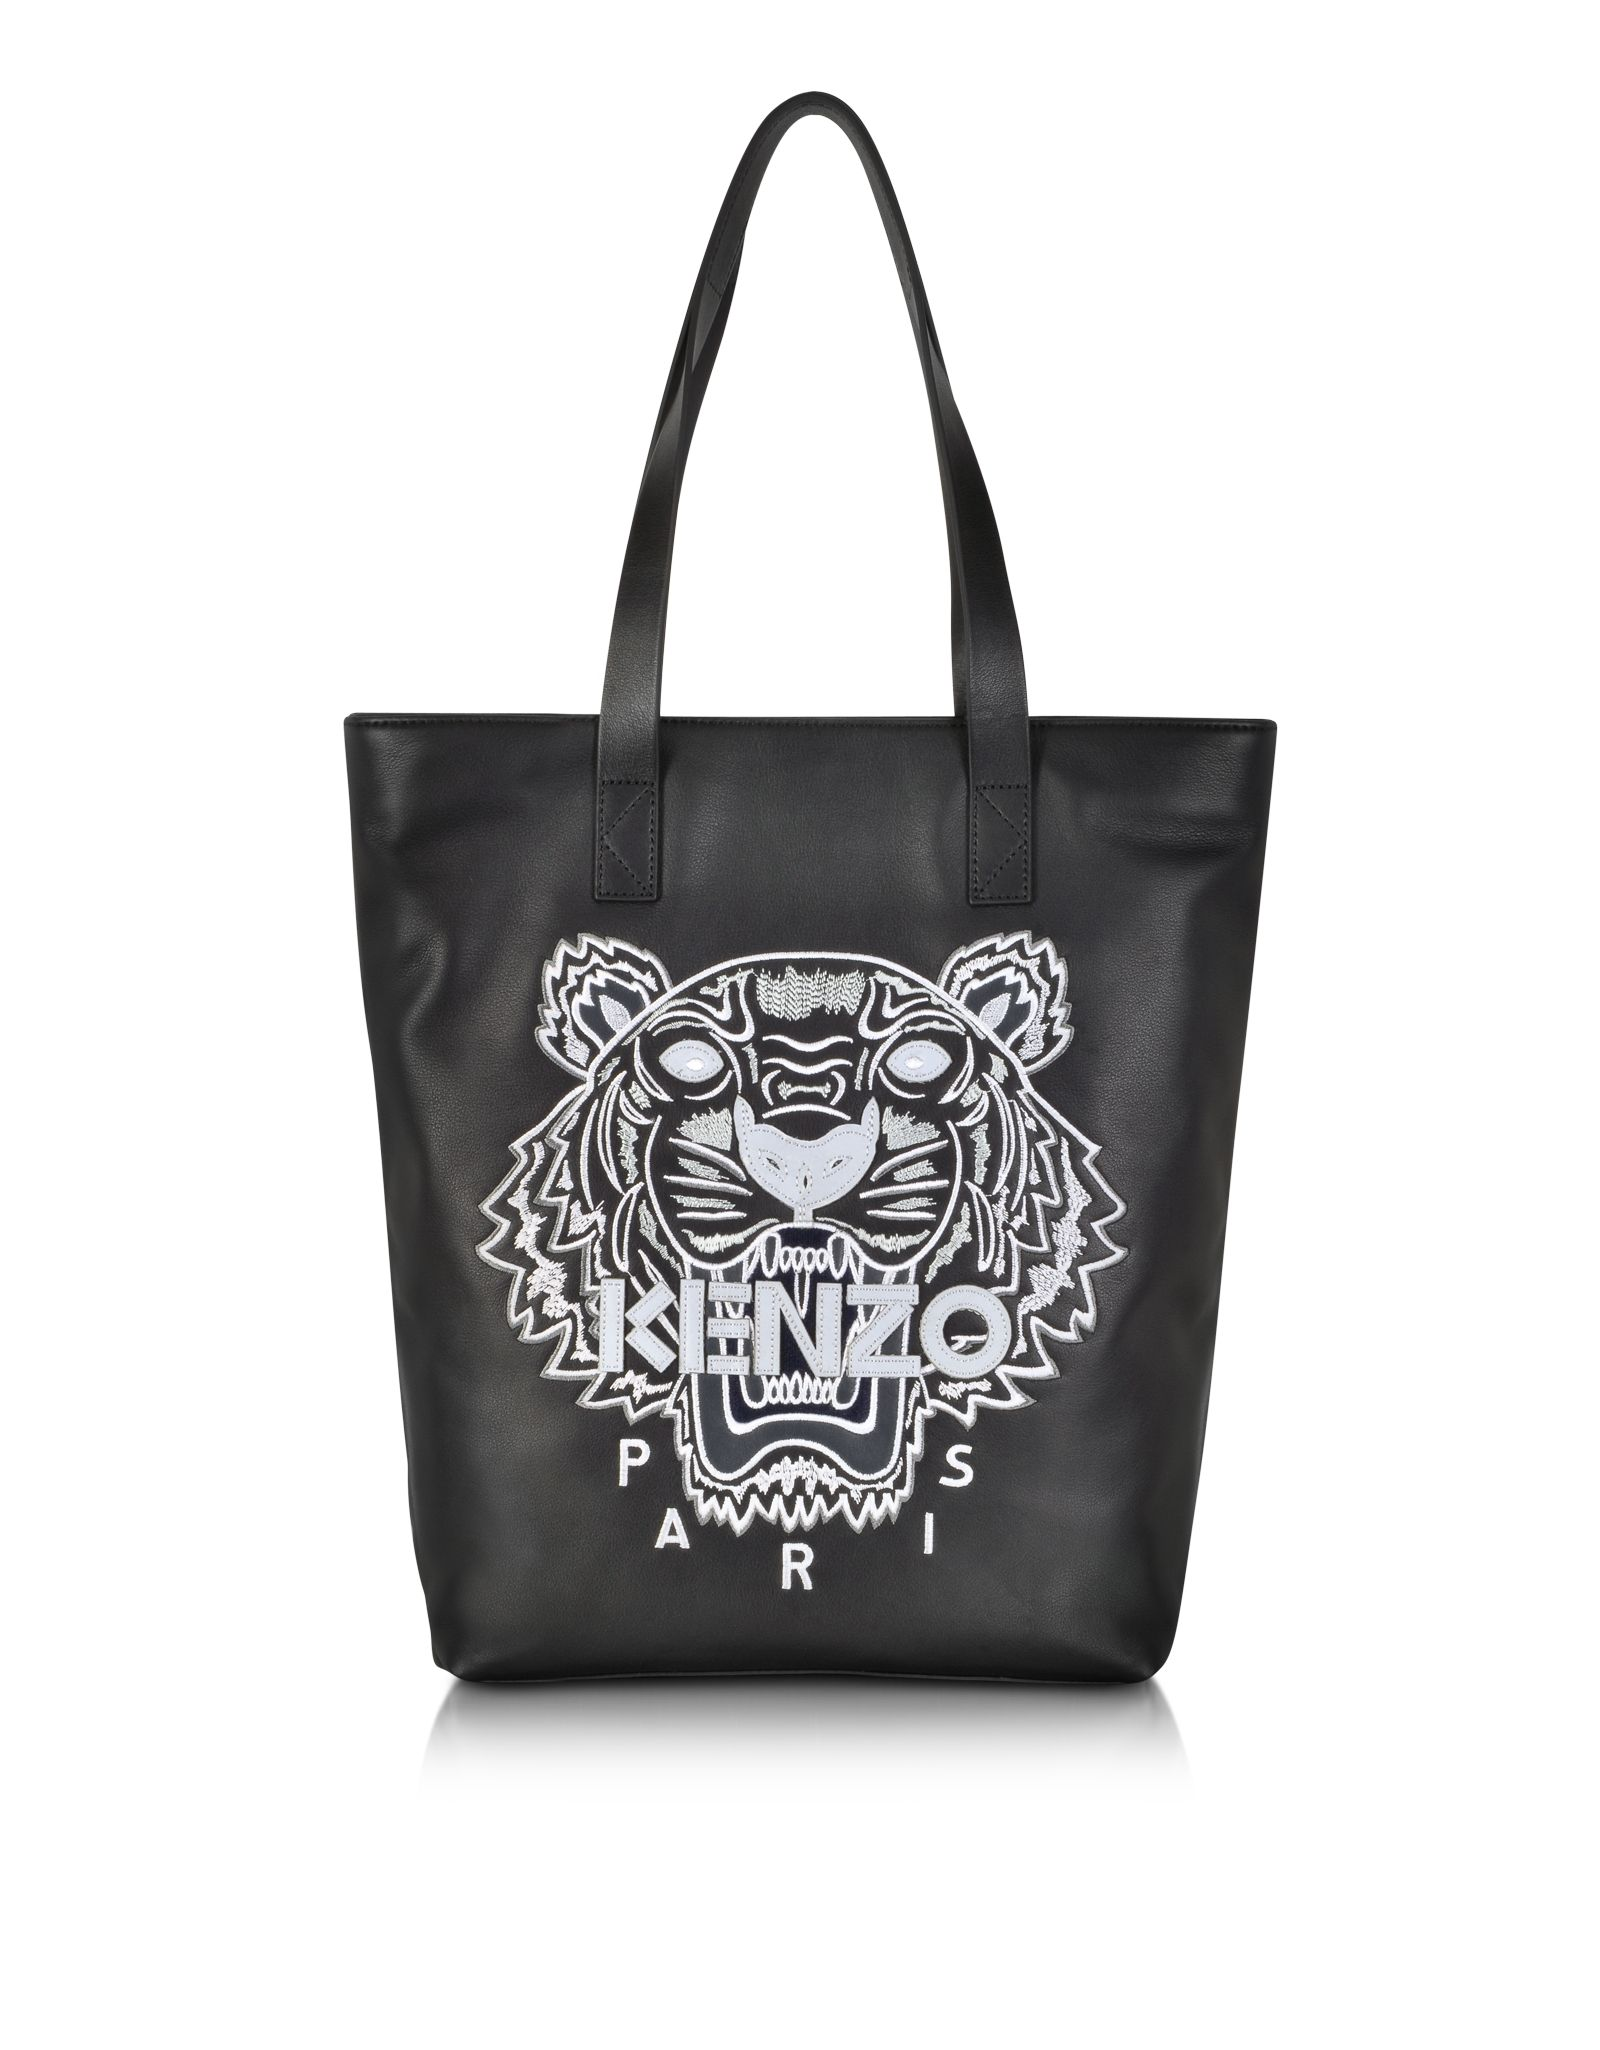 d7ebcc71a3fc14 Kenzo Black Tiger Tote Bag at FORZIERI. Find this Pin and more ...